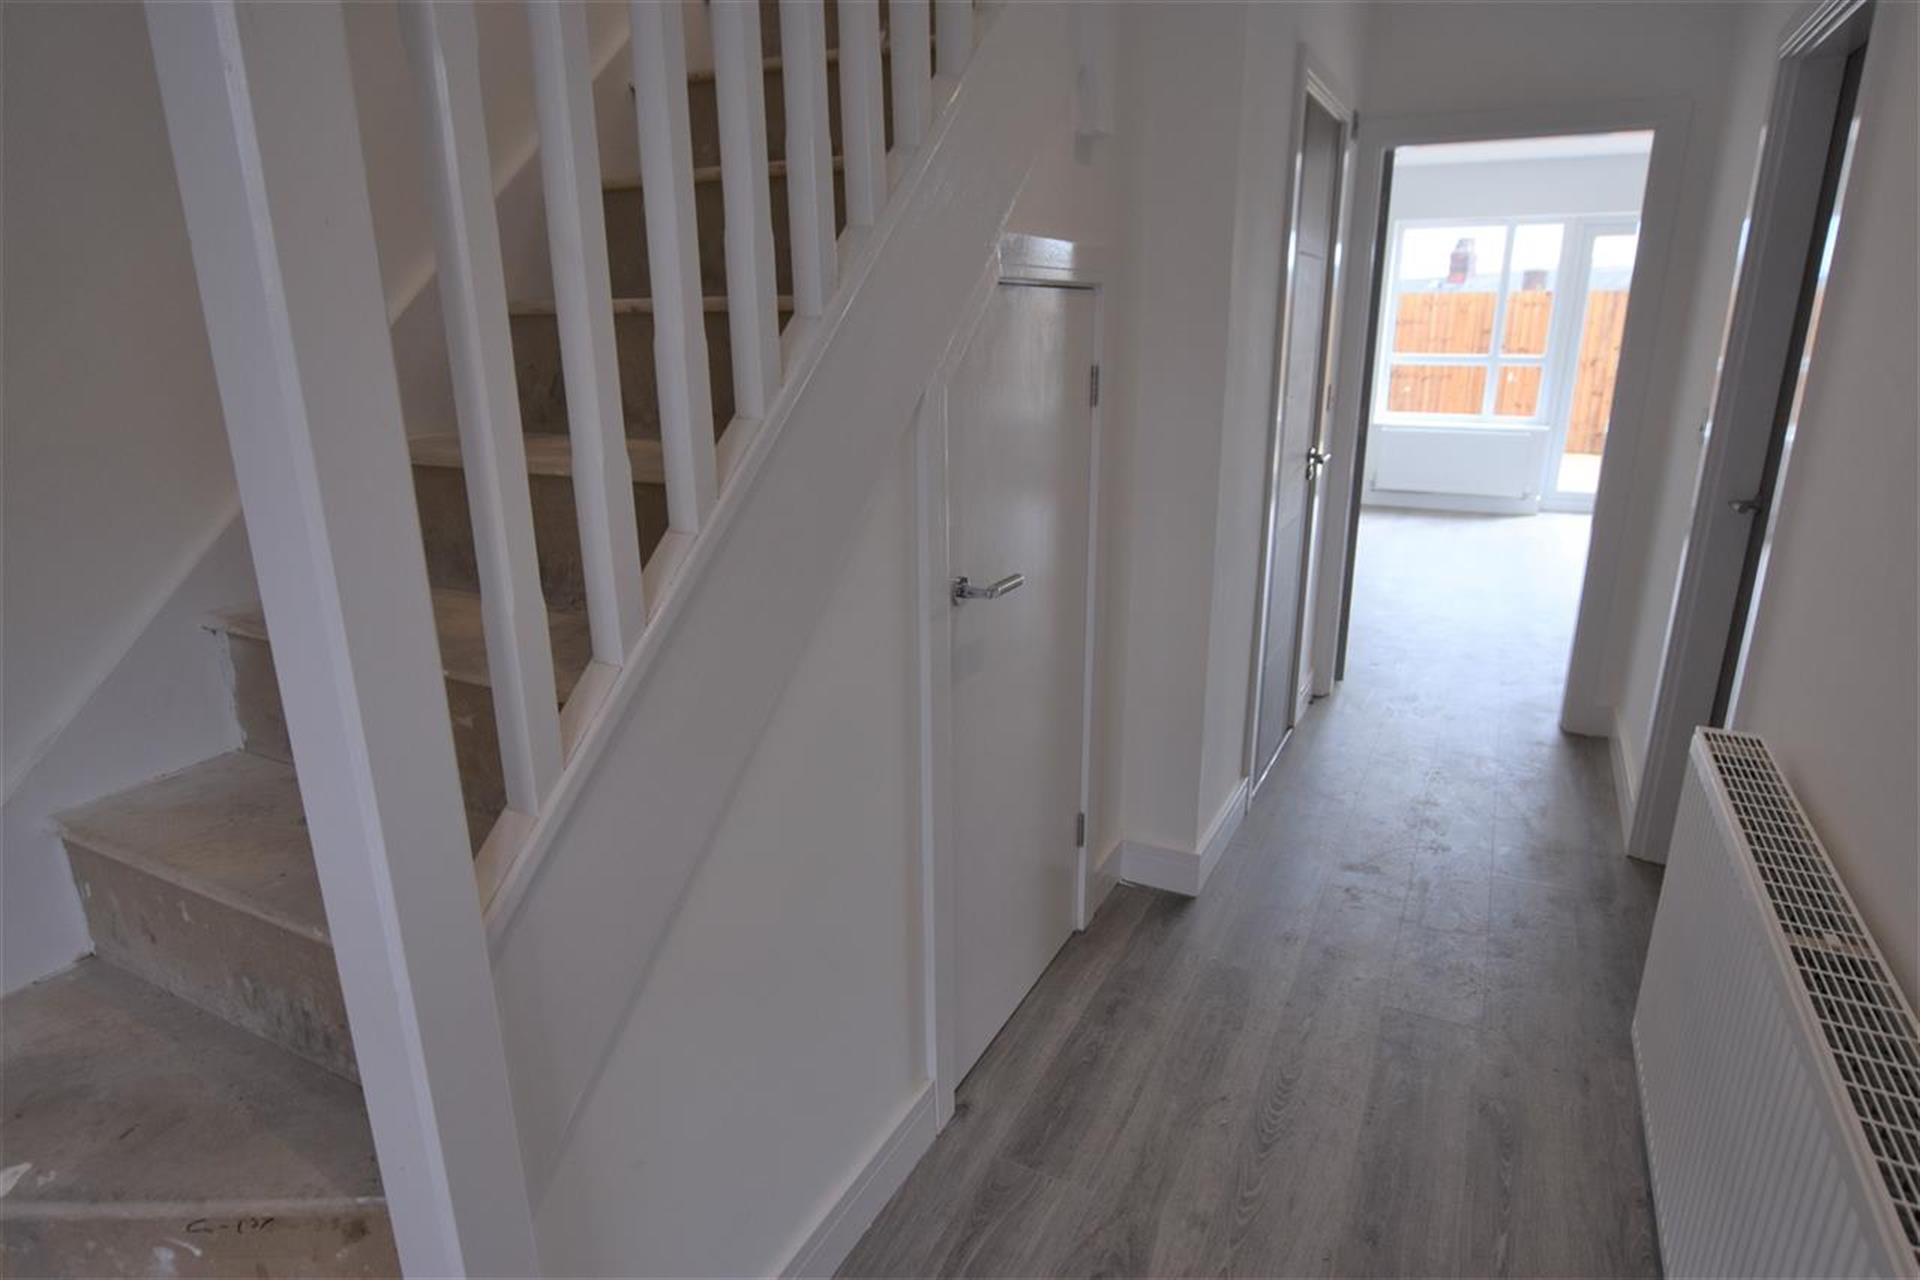 3 Bedroom Semi-detached House For Sale - Stairs to First Floor